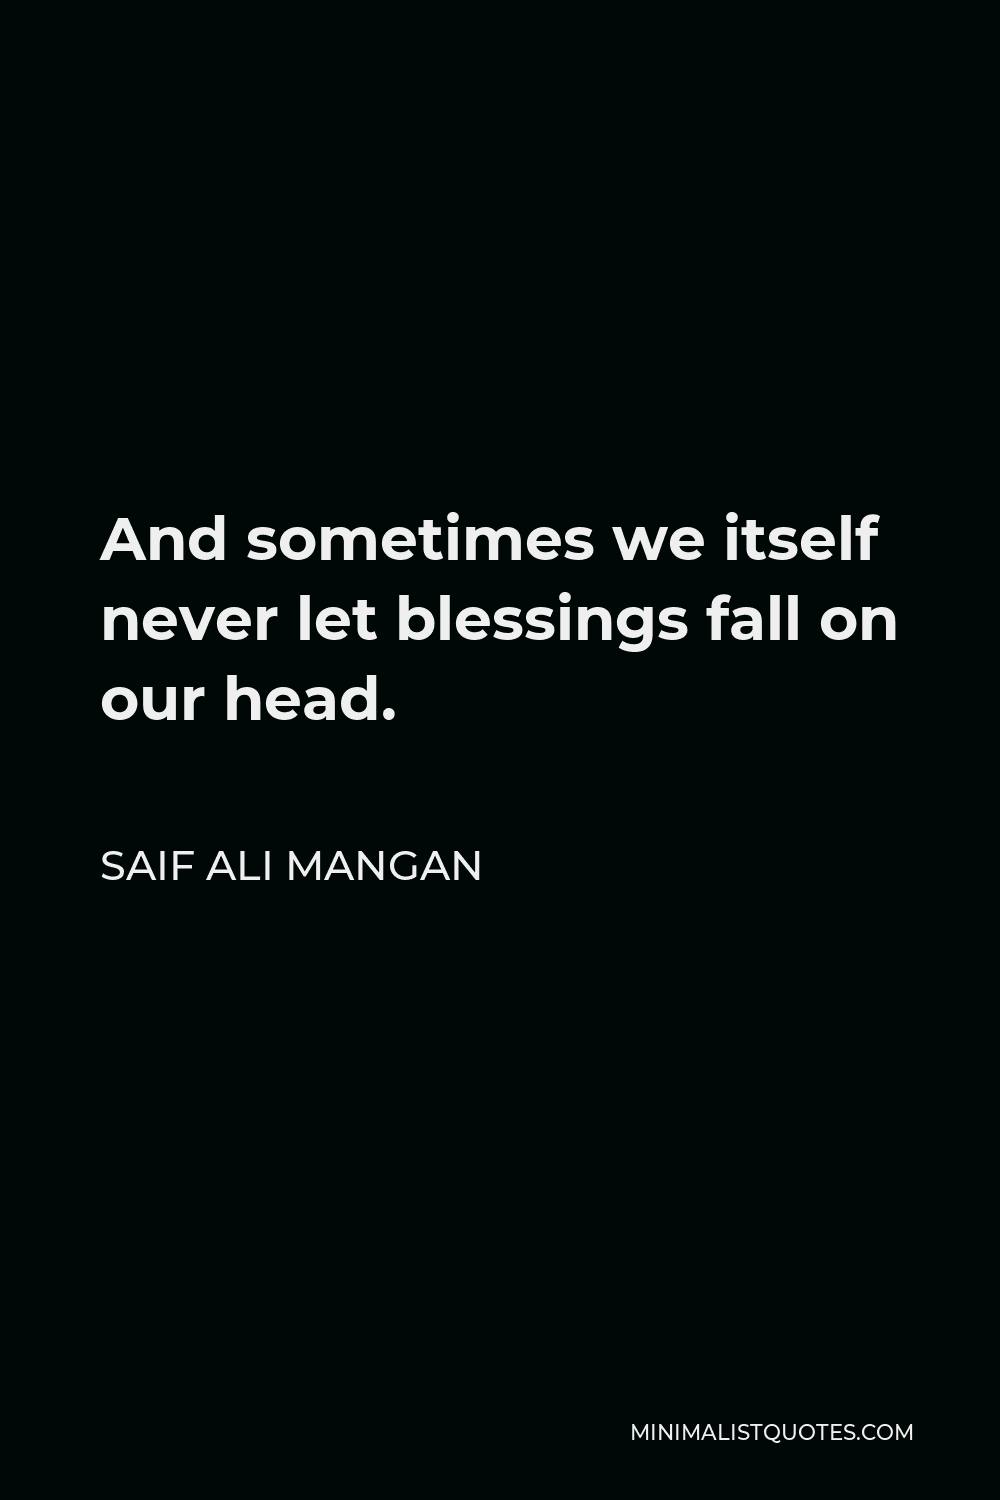 Saif Ali Mangan Quote - And sometimes we itself never let blessings fall on our head.